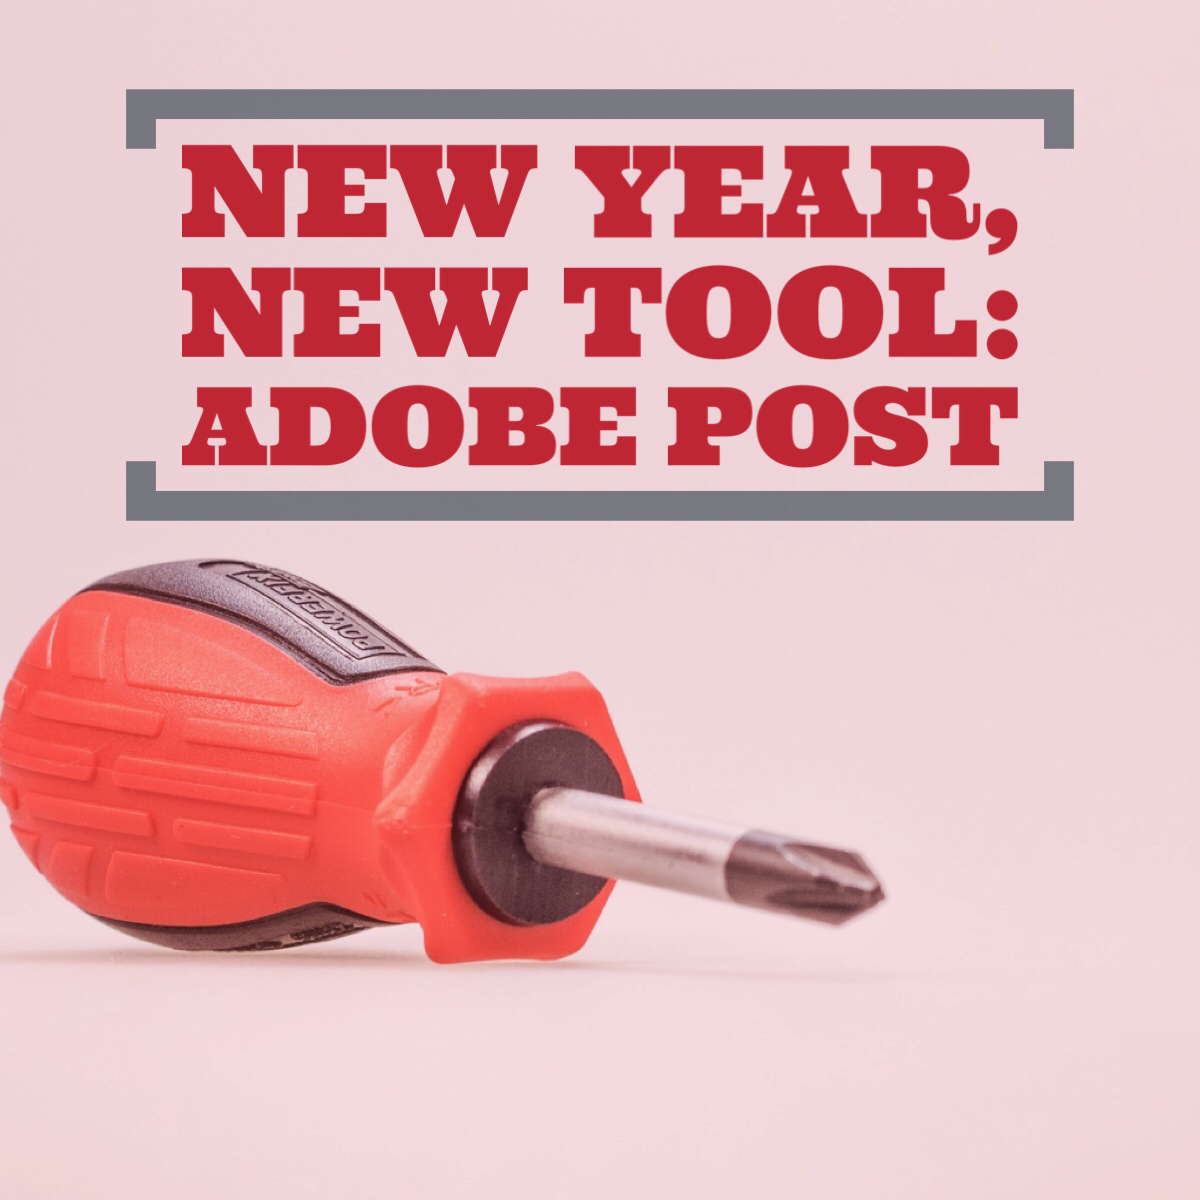 New Year, New Tool